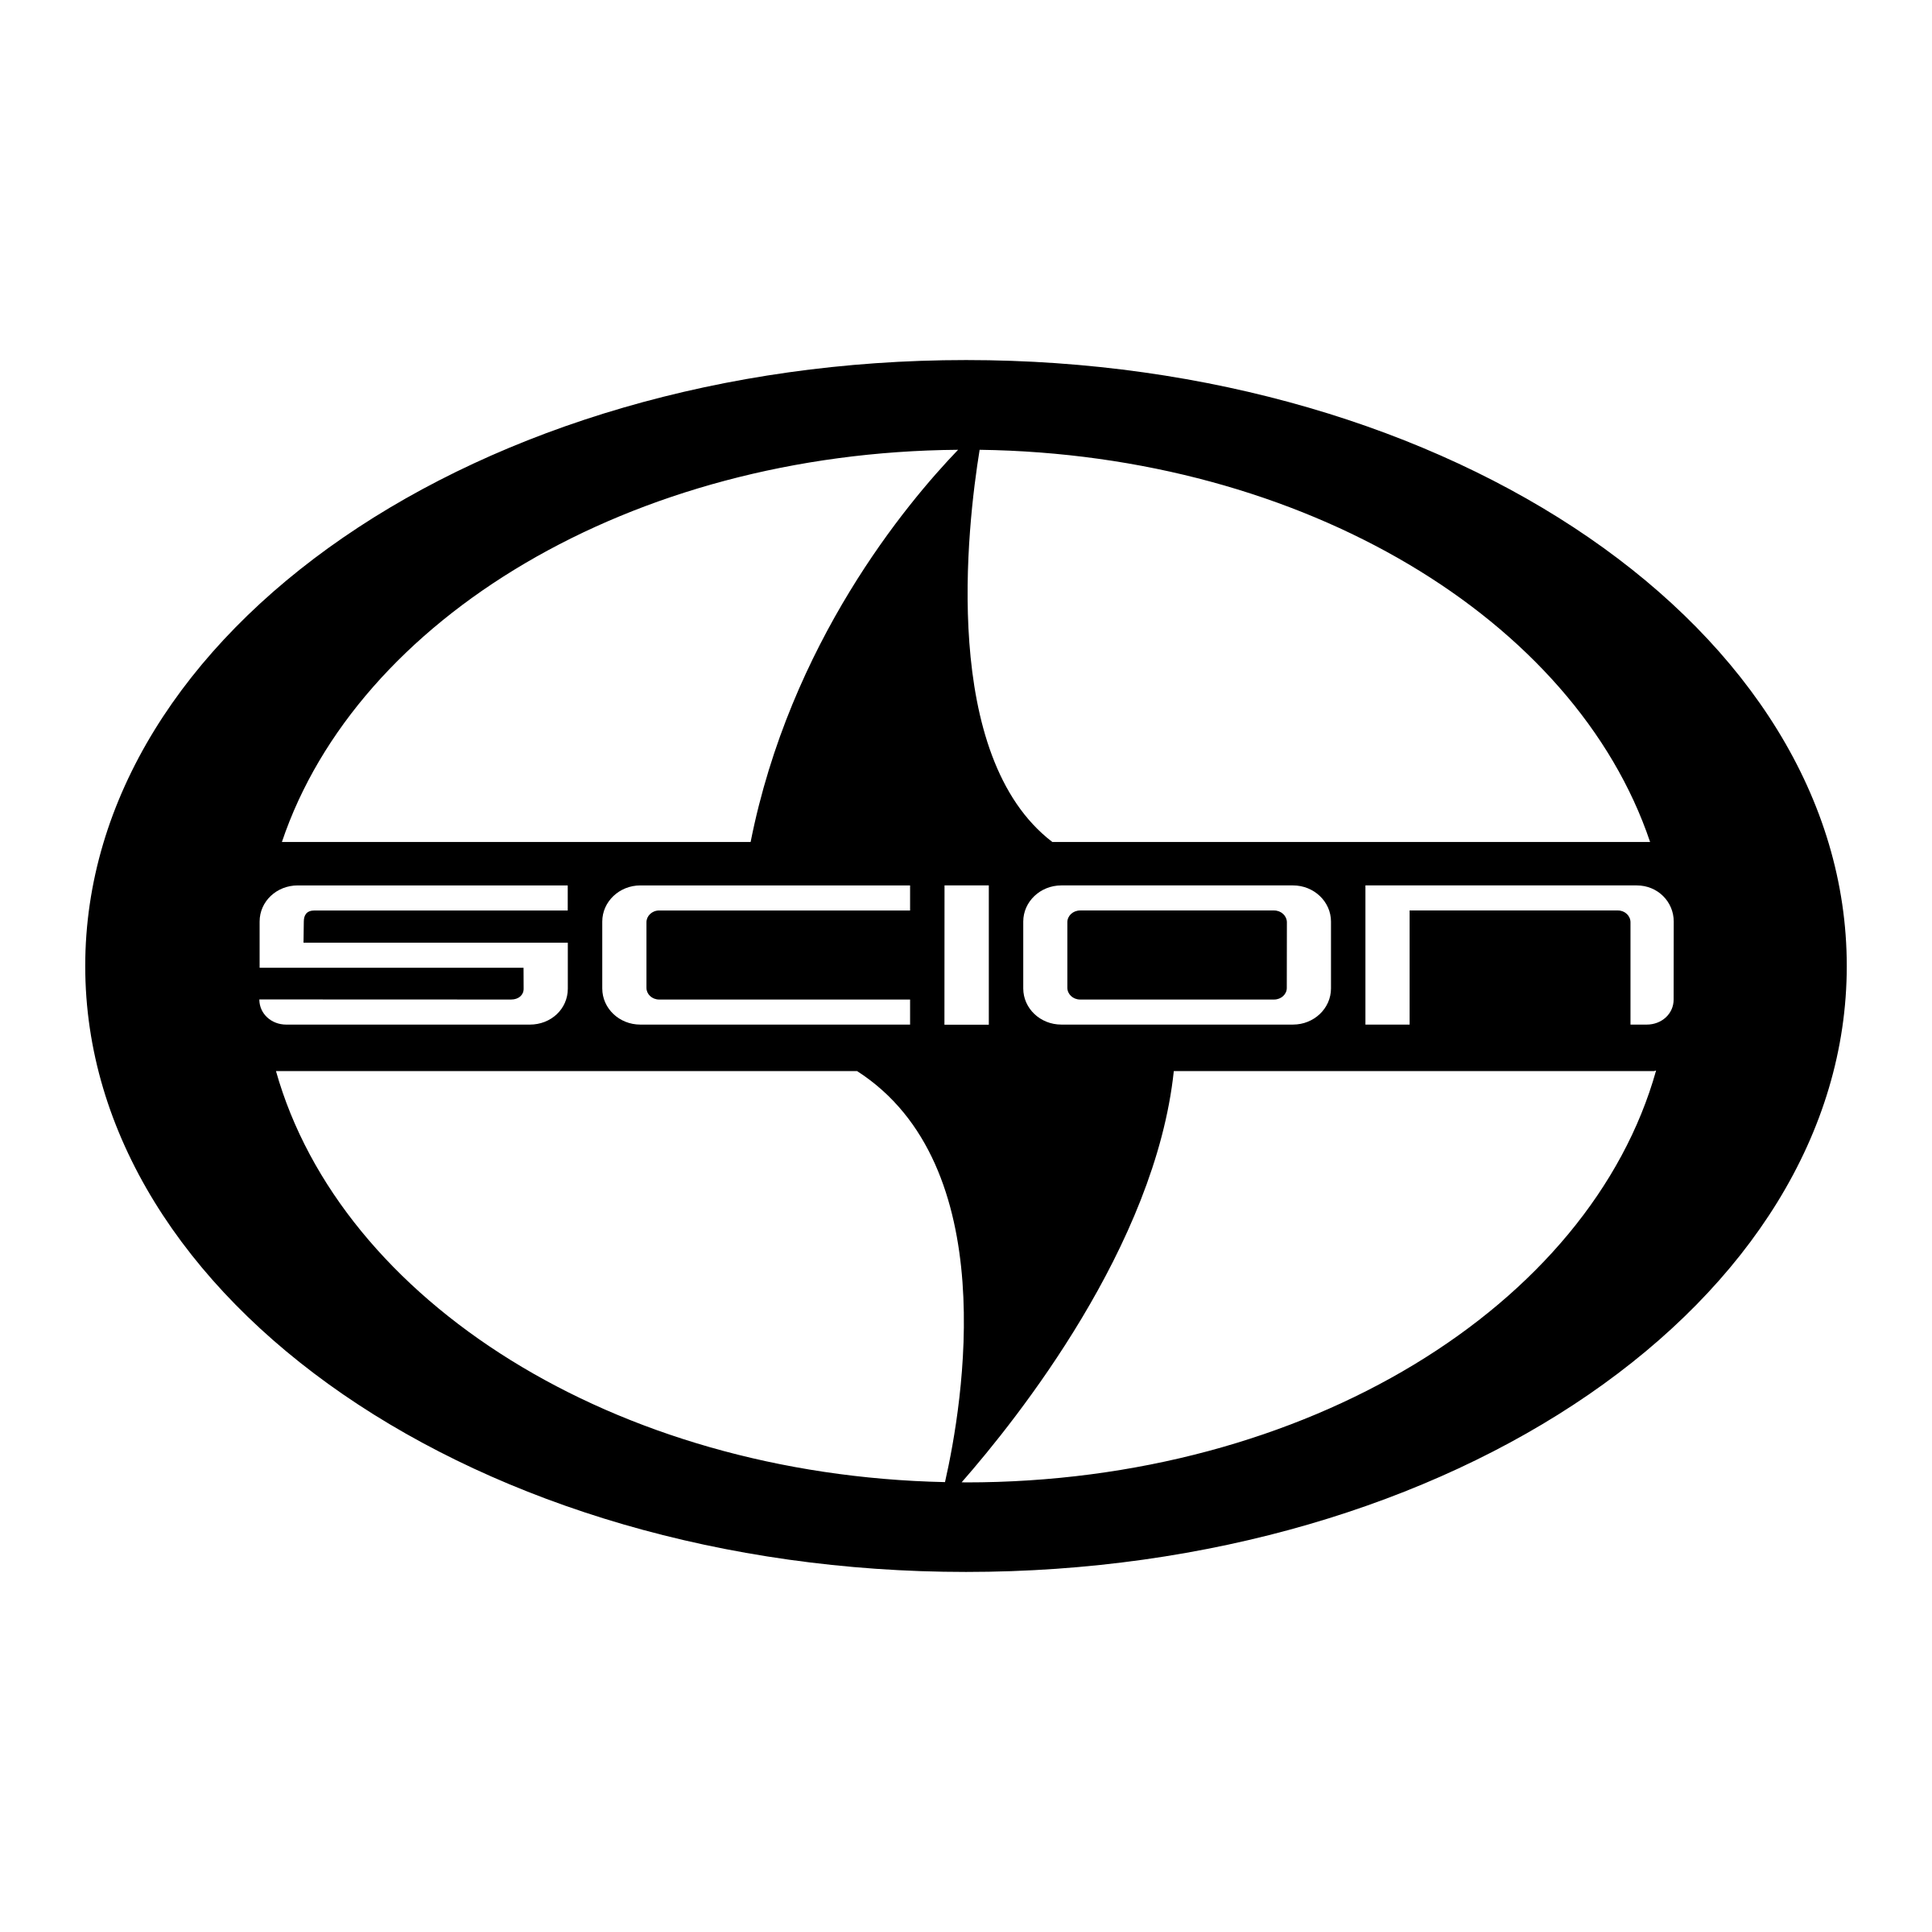 scion-logo-png-transparent.png